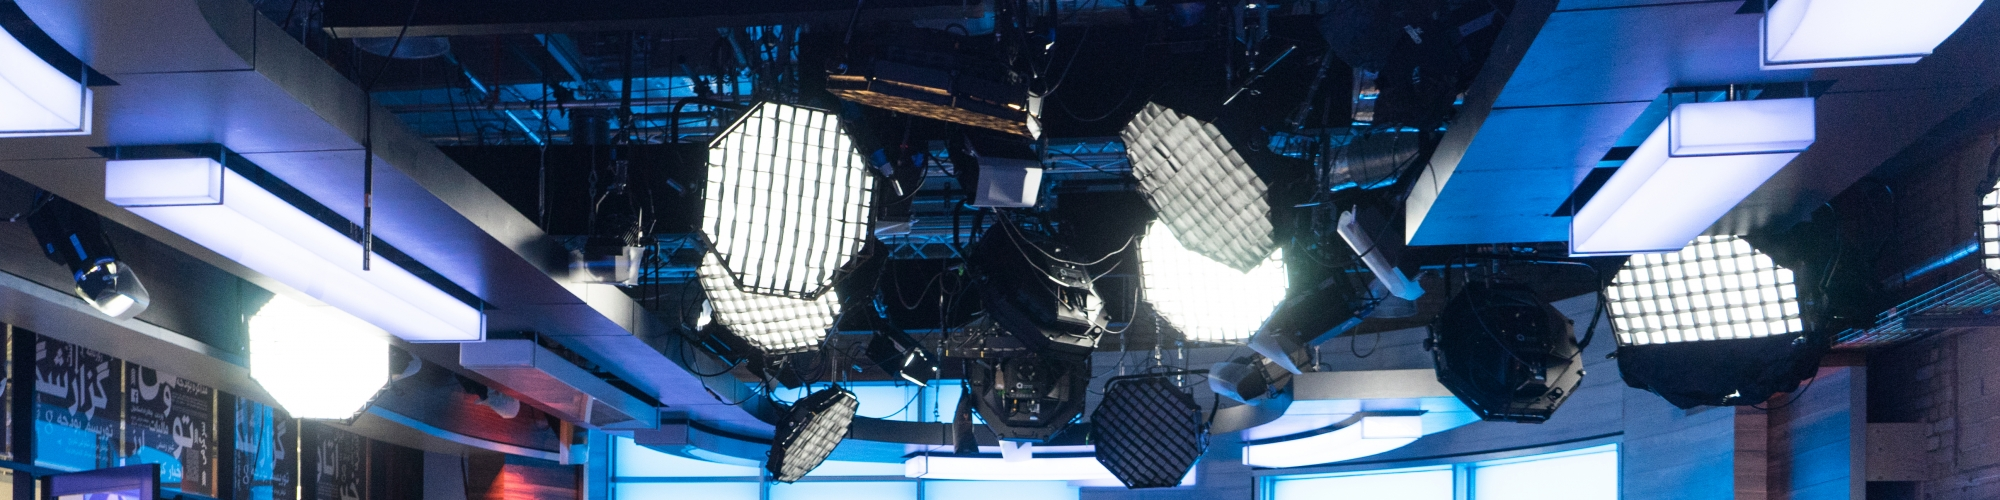 Film, TV & Broadcast LED Lighting